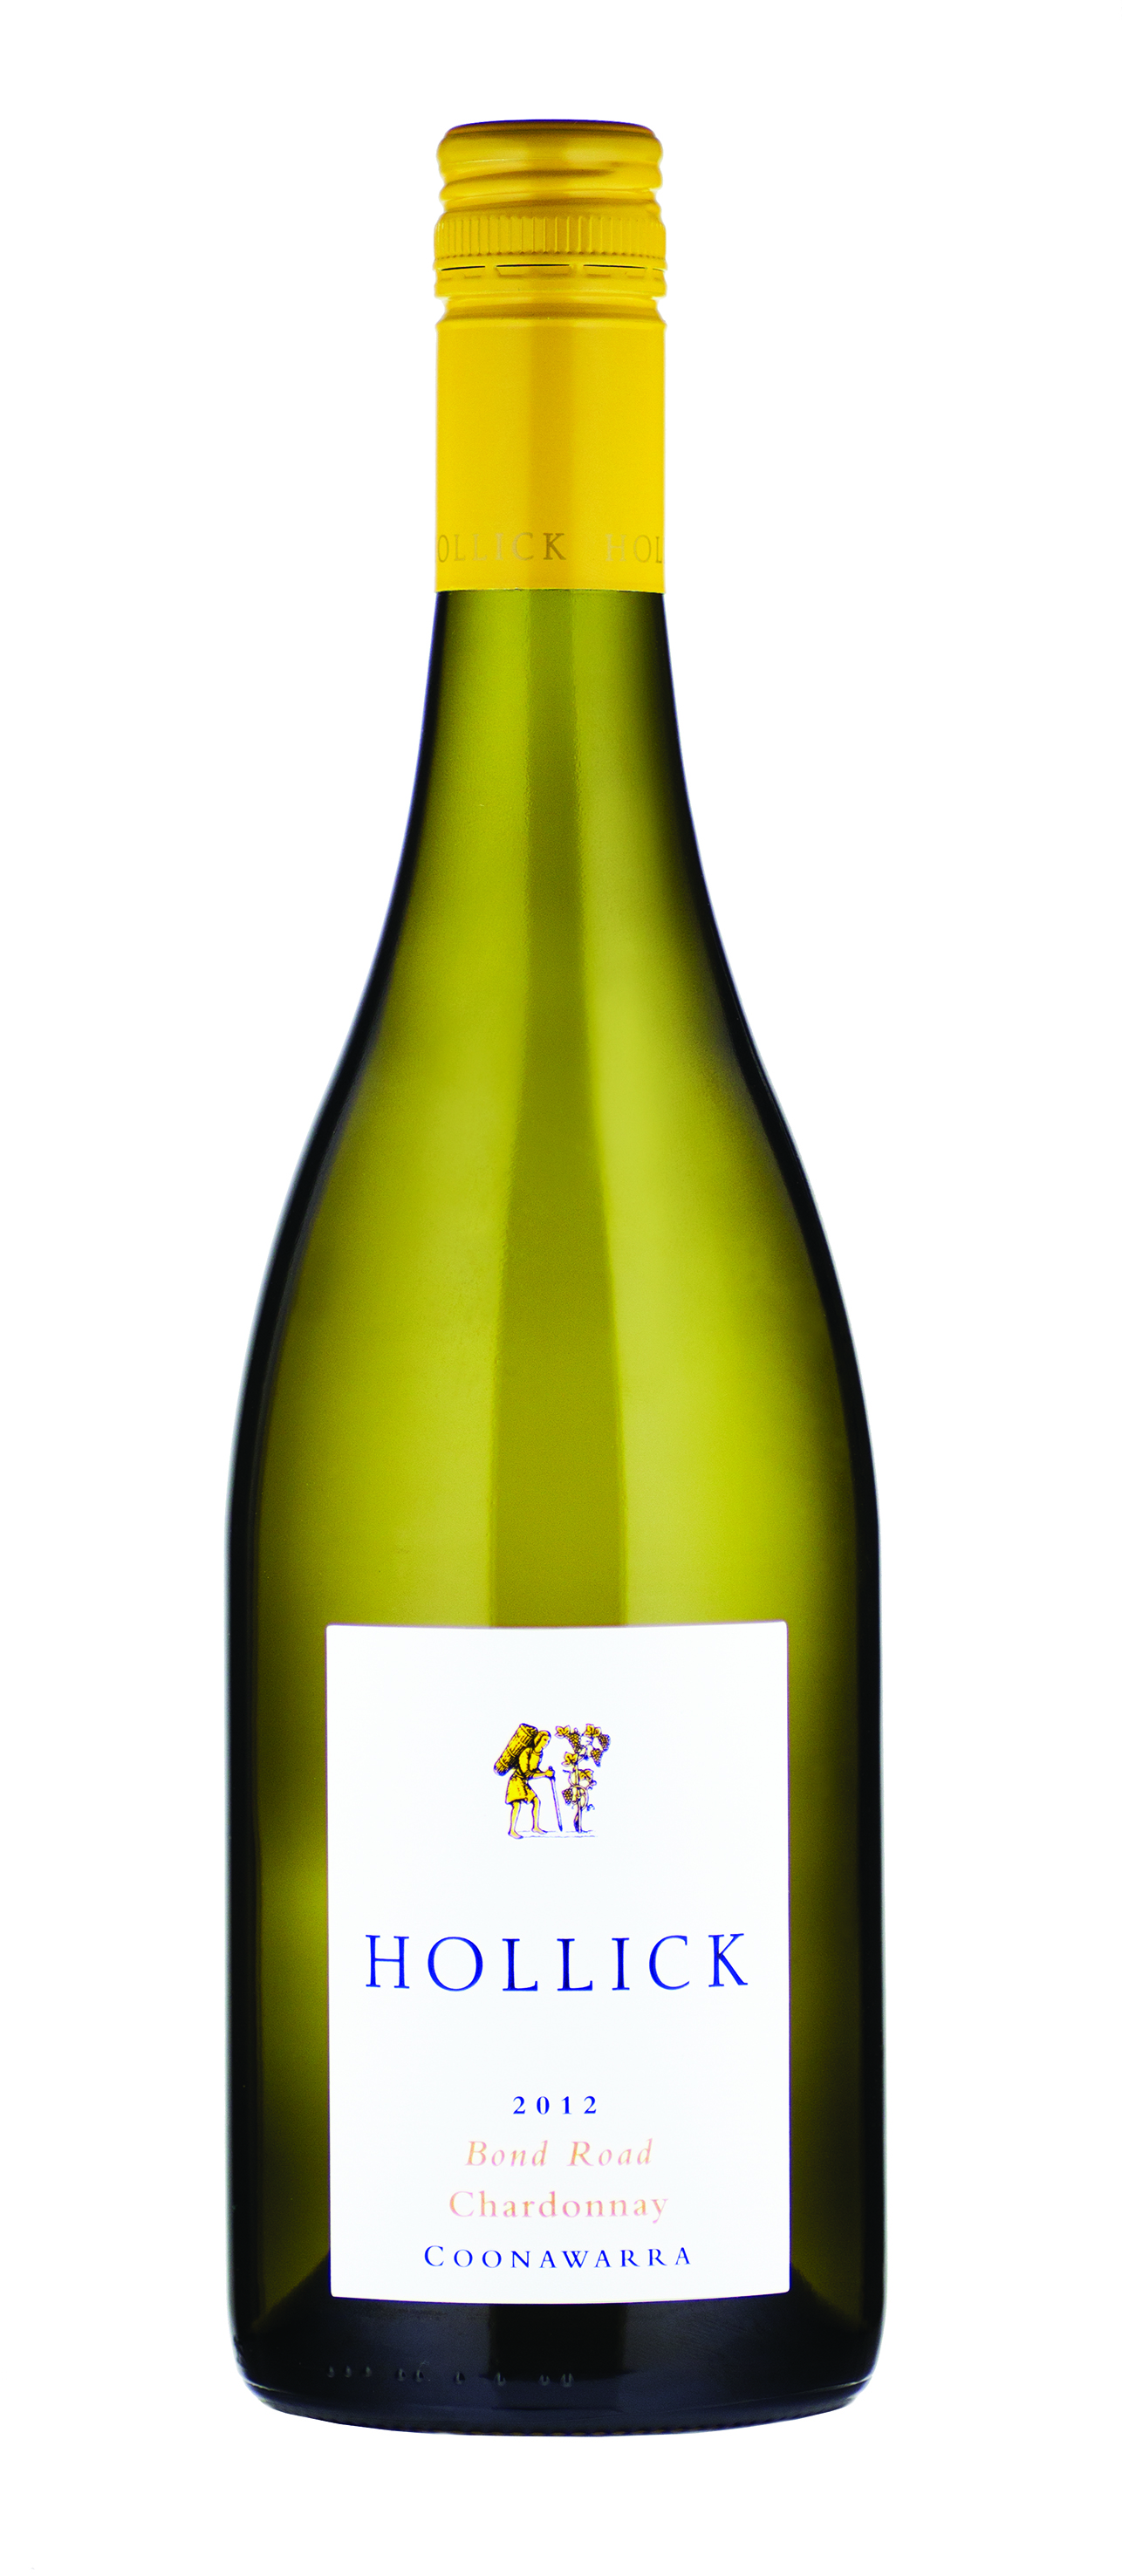 Bond Road Chardonnay